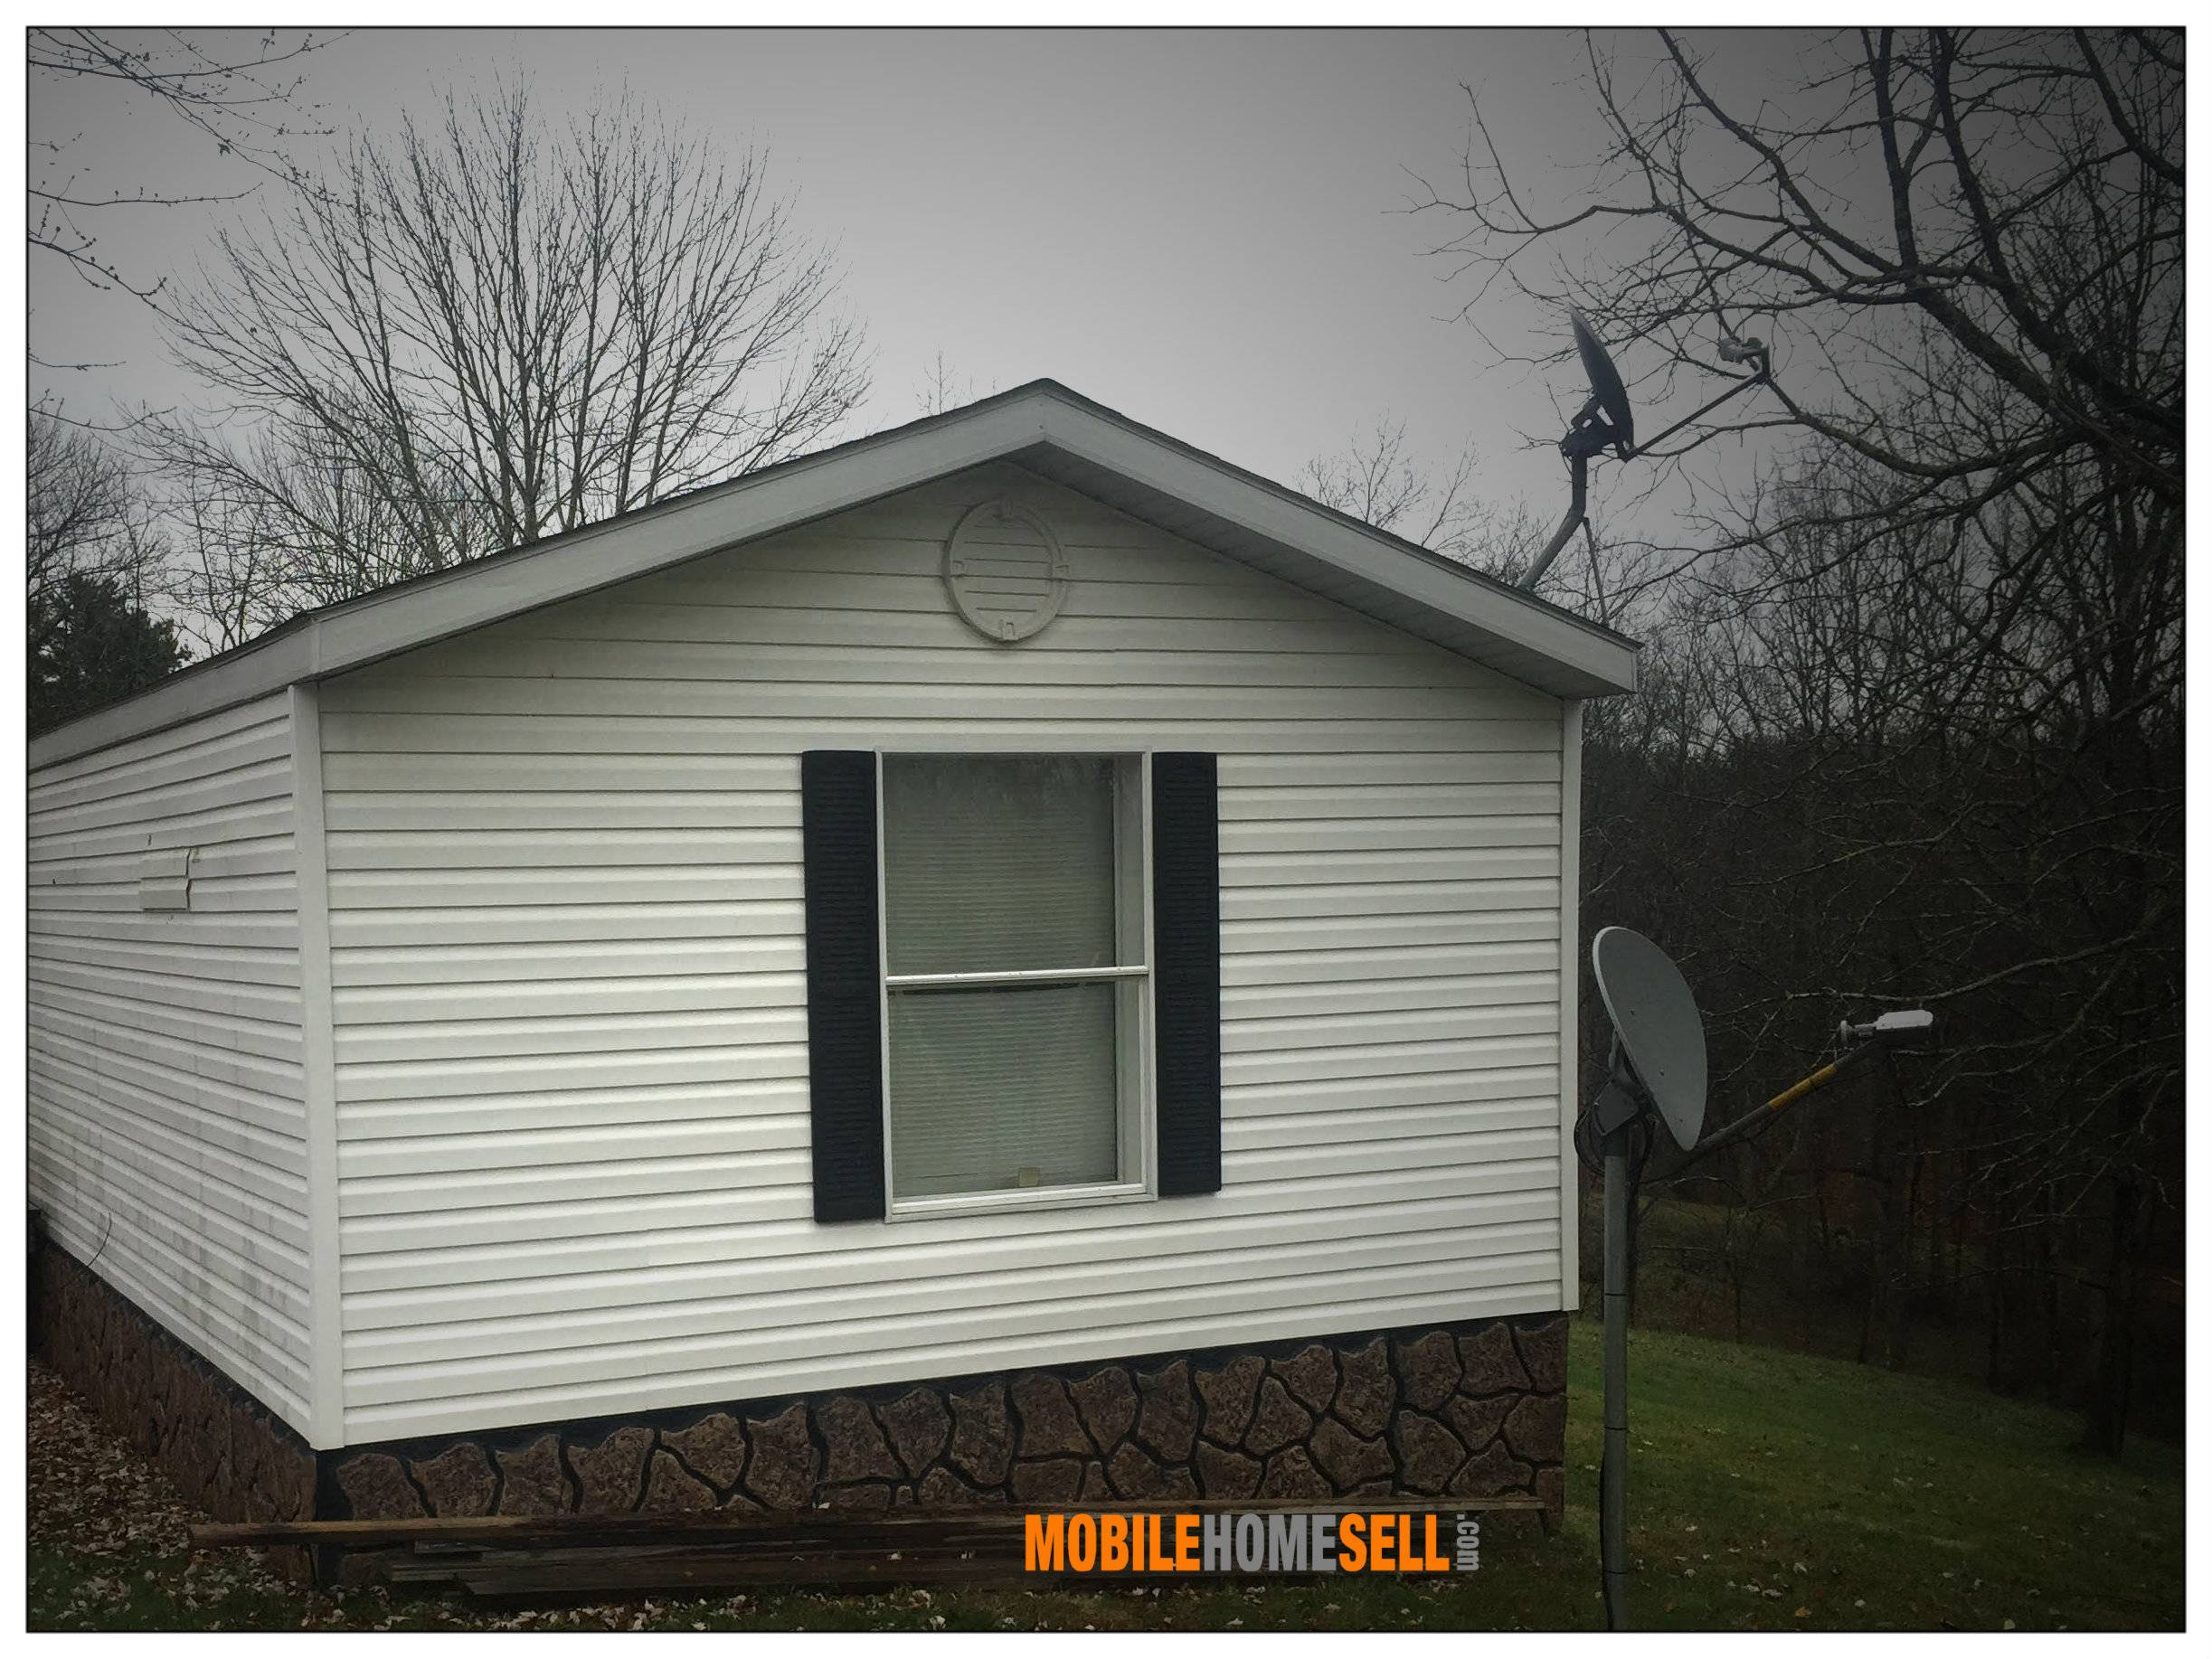 Manufactured Selling Solutions Now Seeking Mobile Homes City